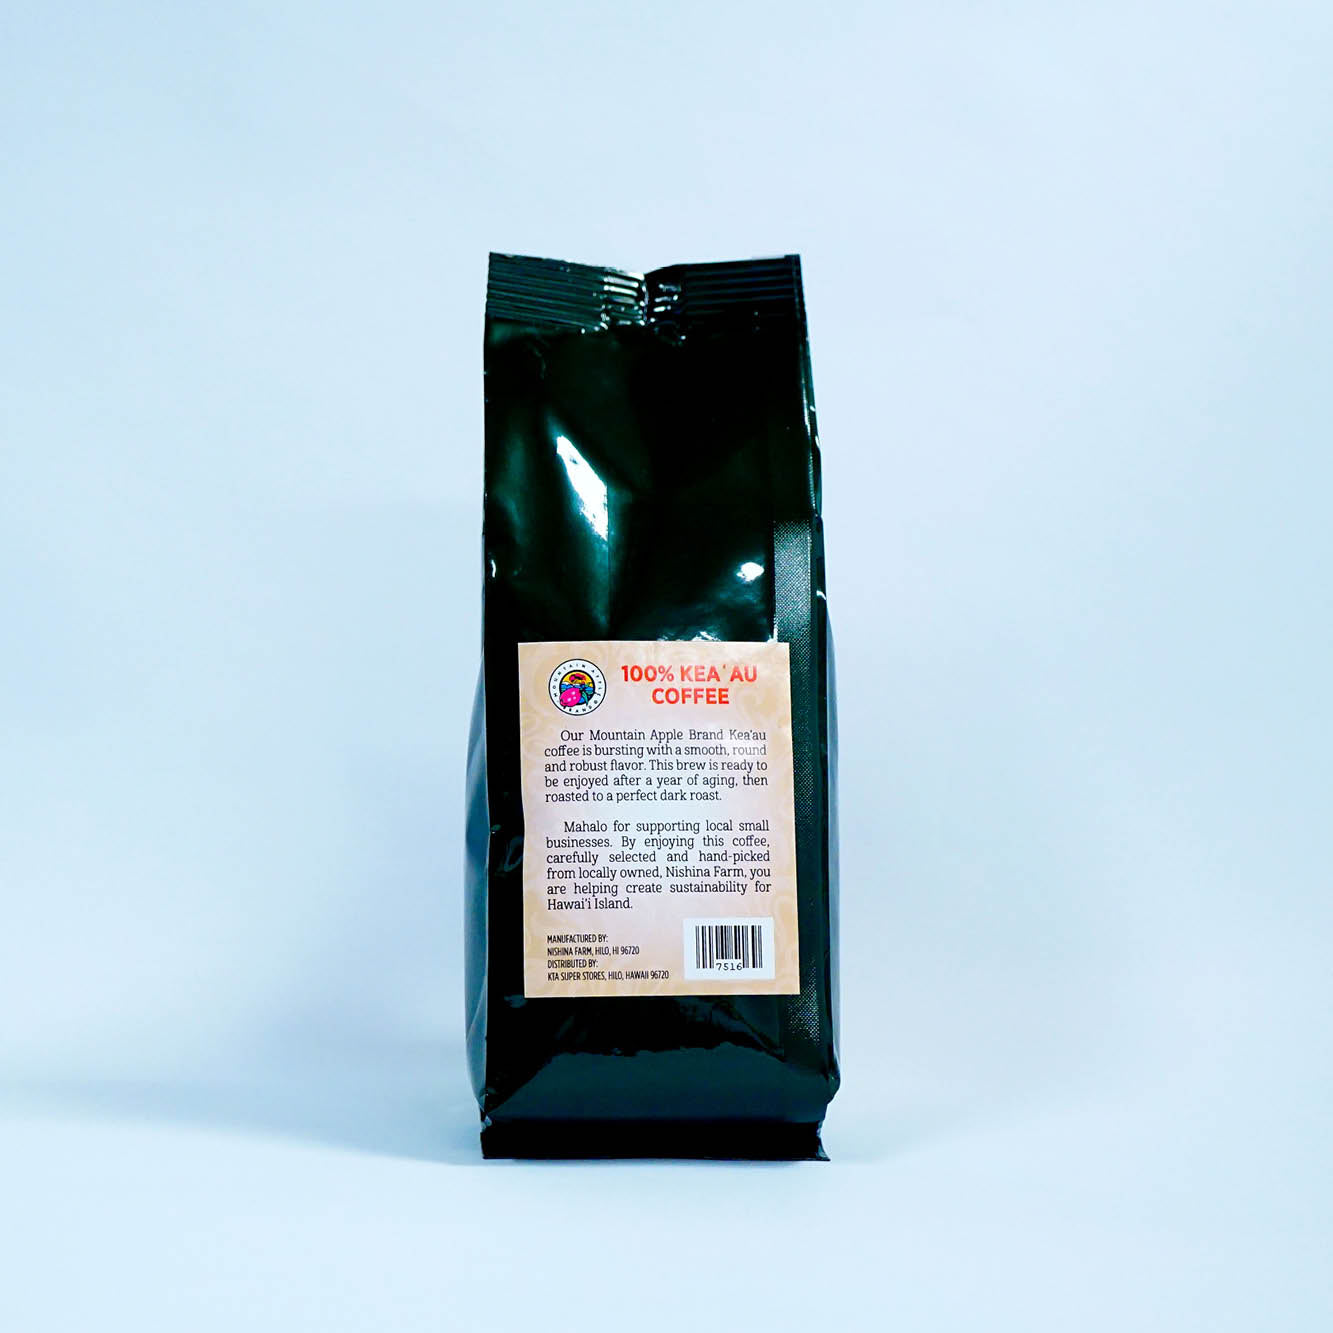 Mountain Apple Brand Gourmet Coffee - 100% Kea'au Dark Roast